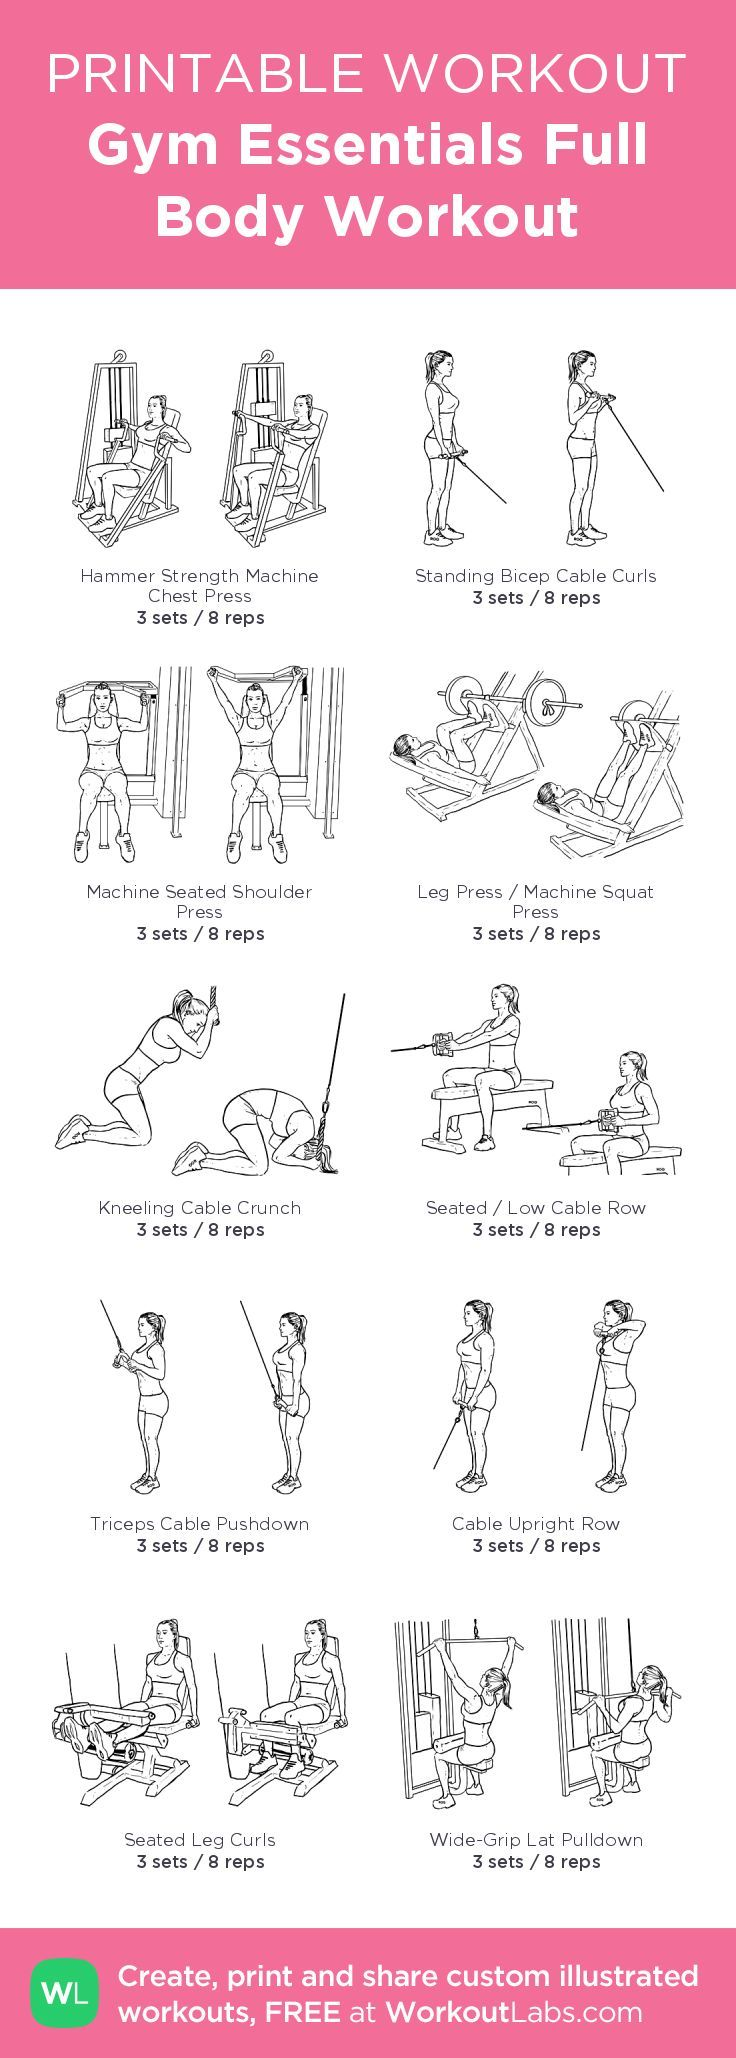 Gym Essentials Full Body Workout · WorkoutLabs Fit